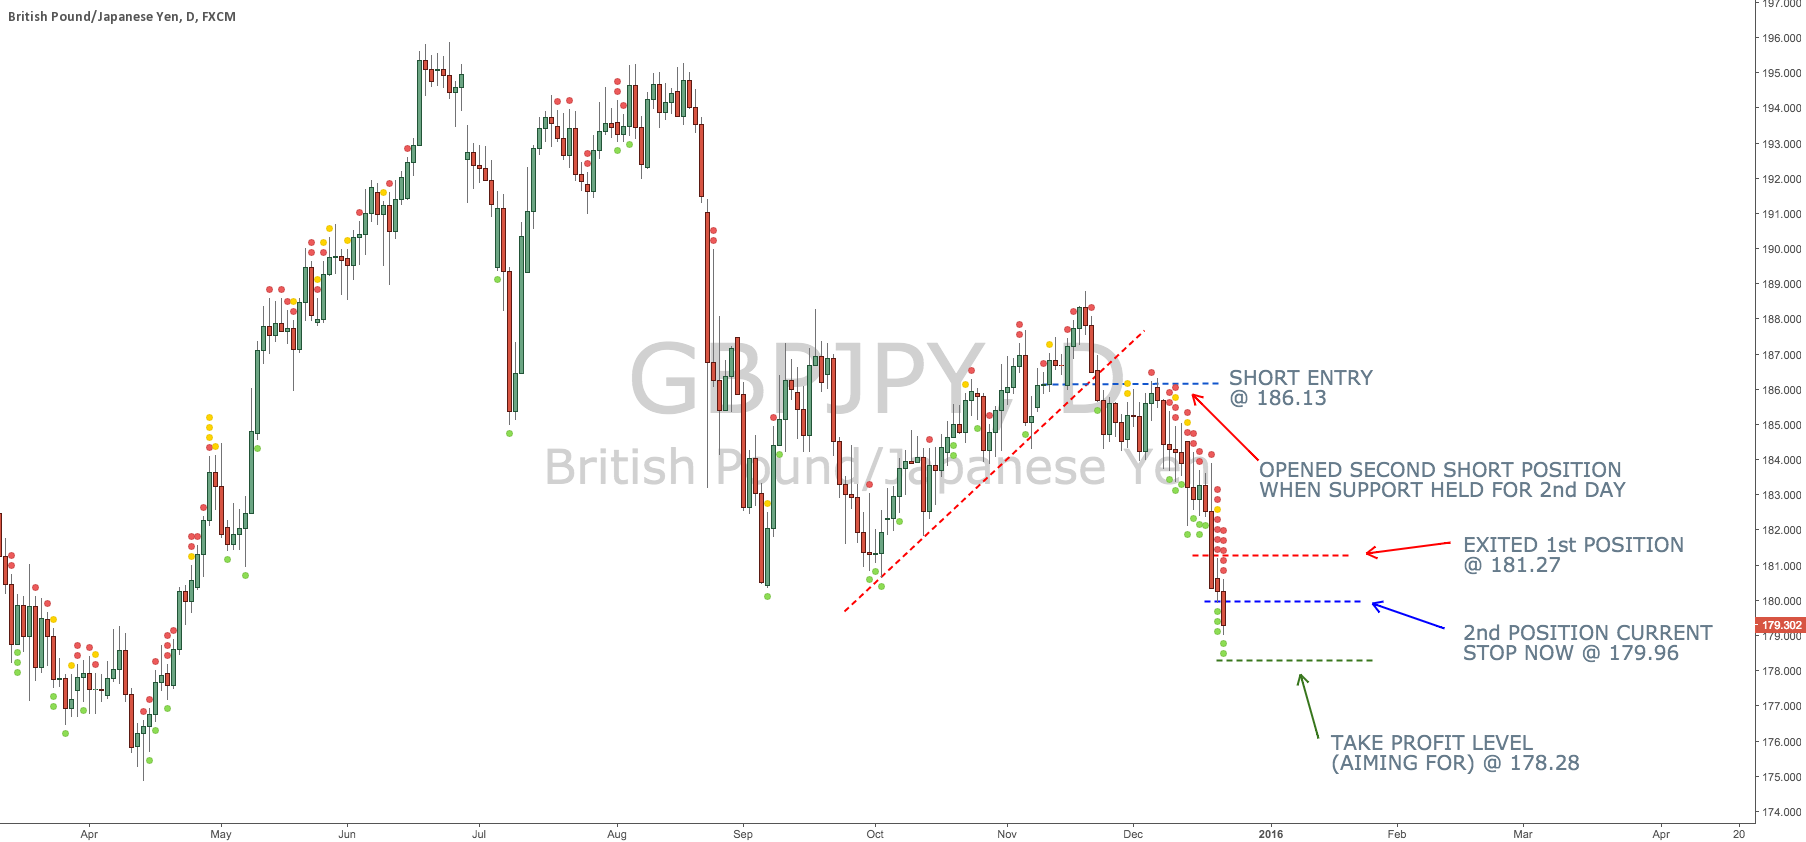 GBP/JPY Trend Coming To An End...